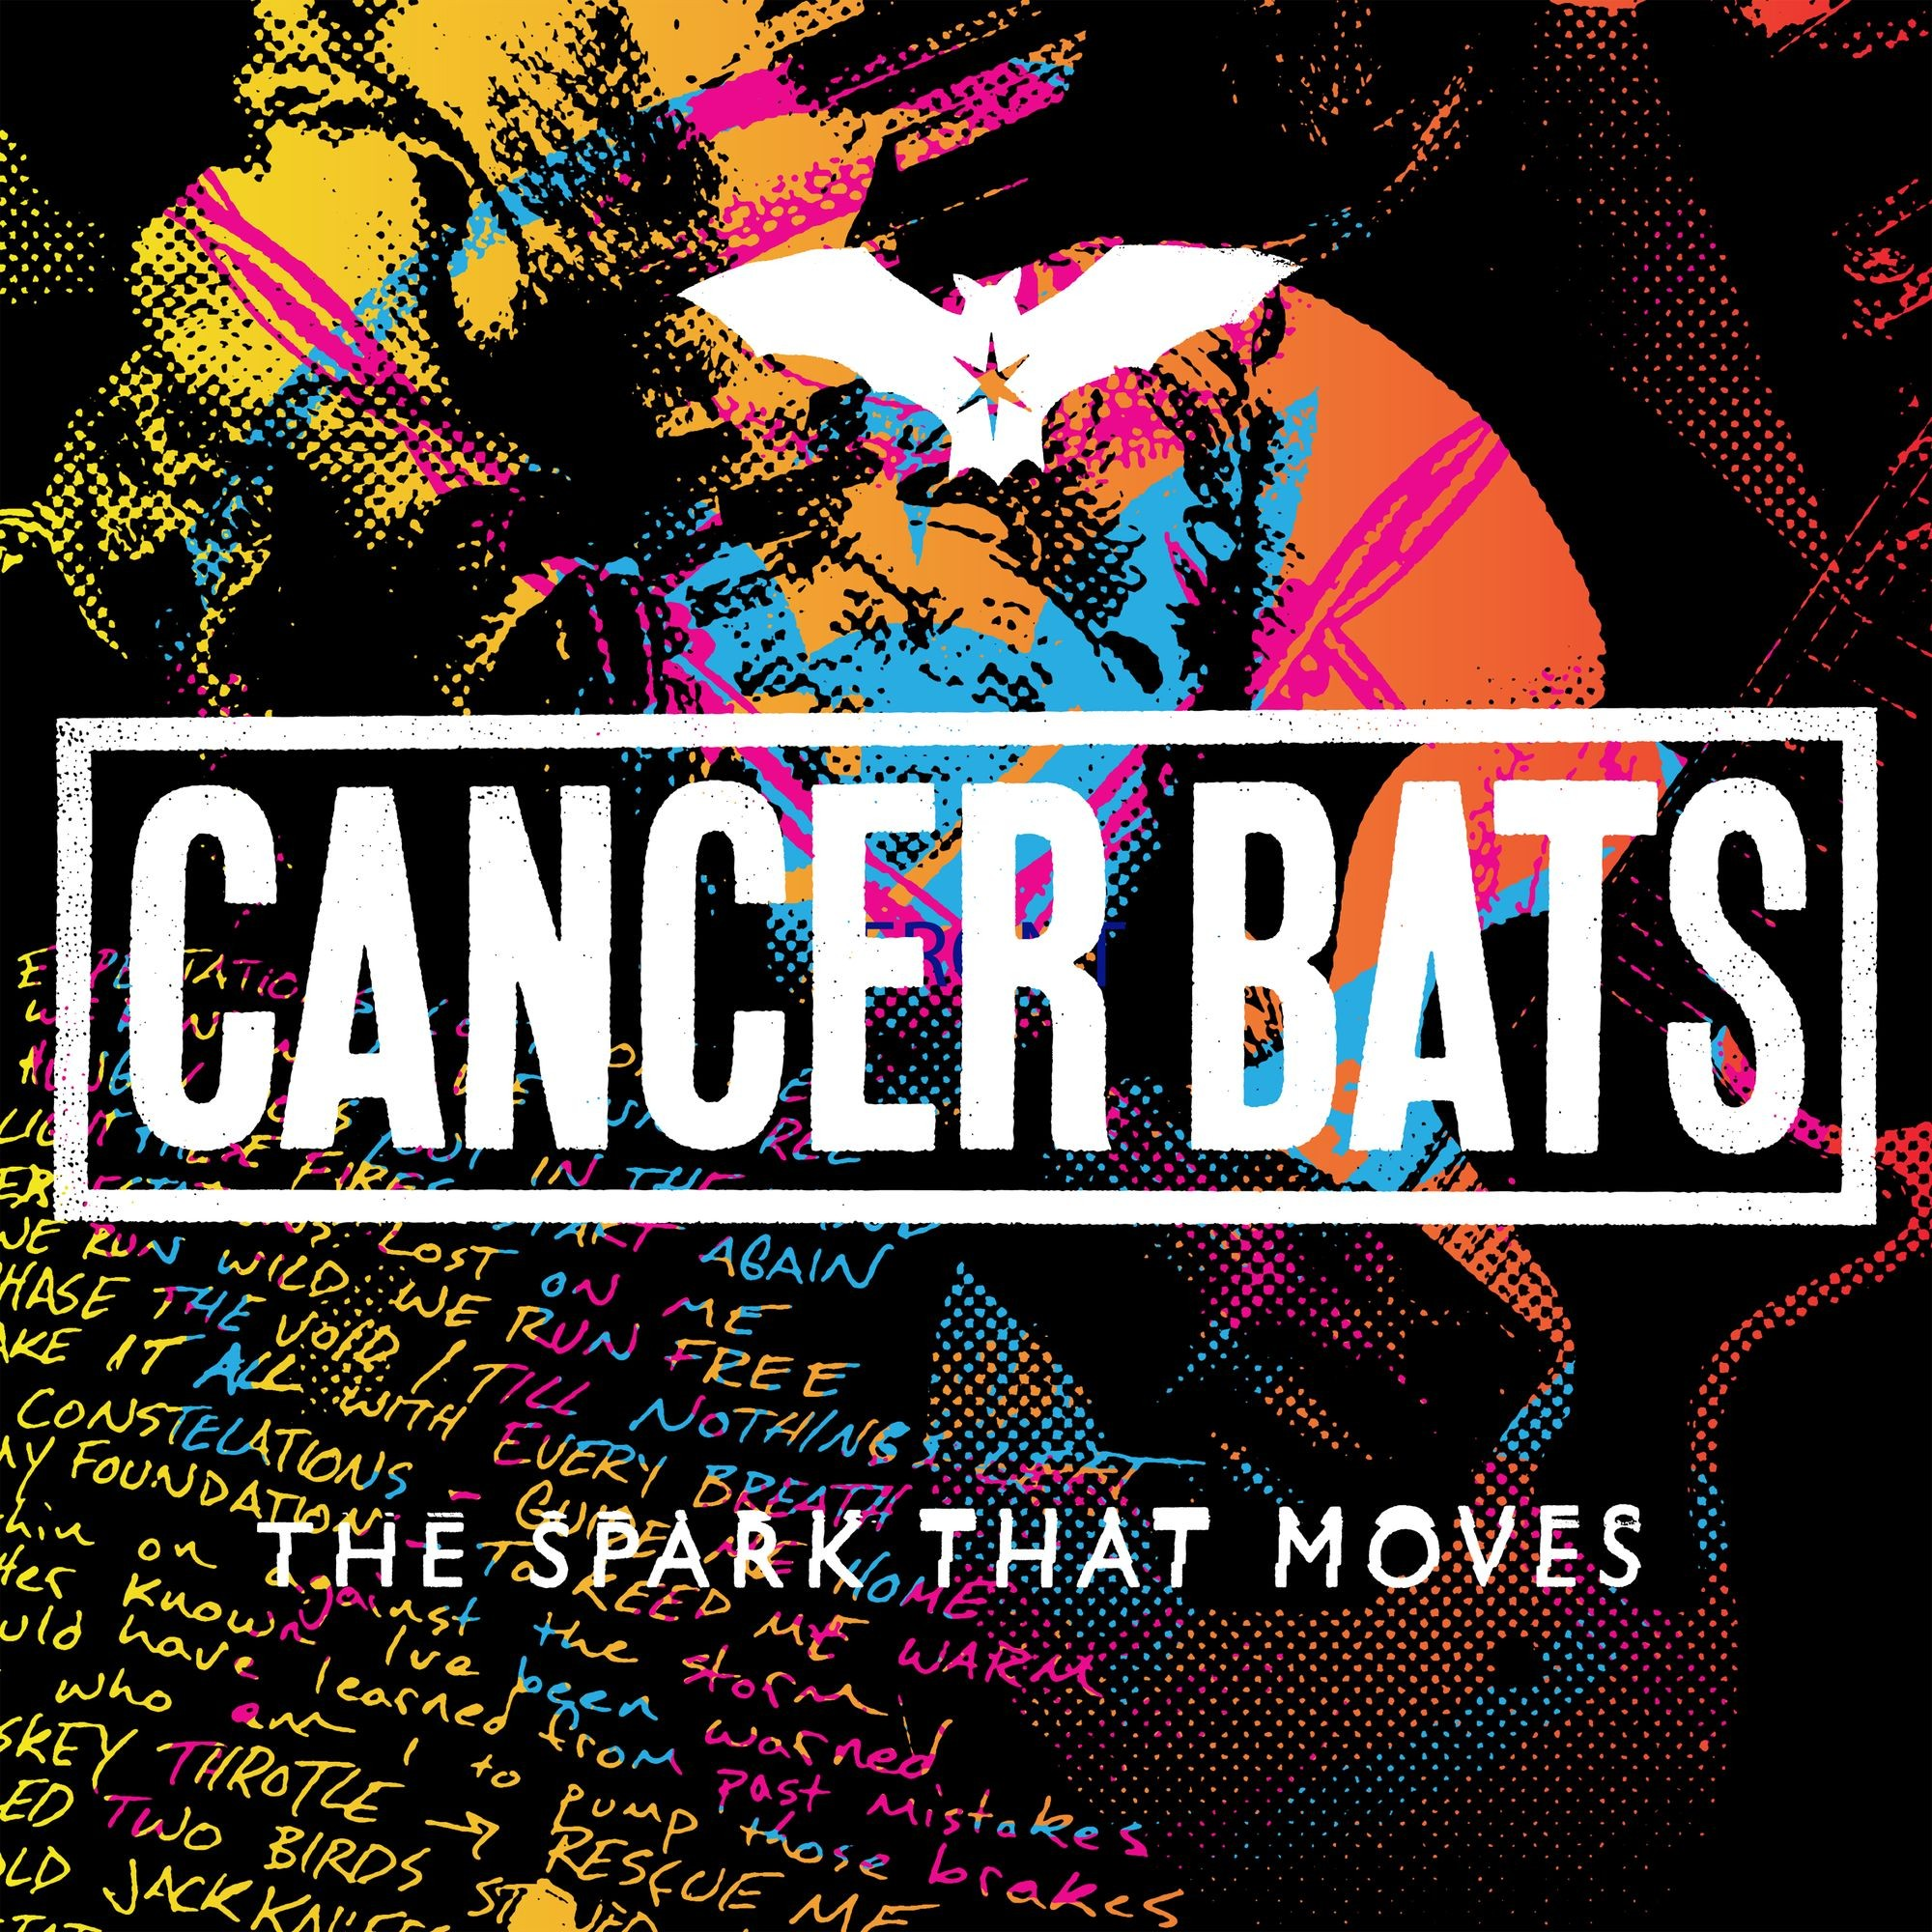 Cancer Bats - The Spark That Moves Vinyl LP